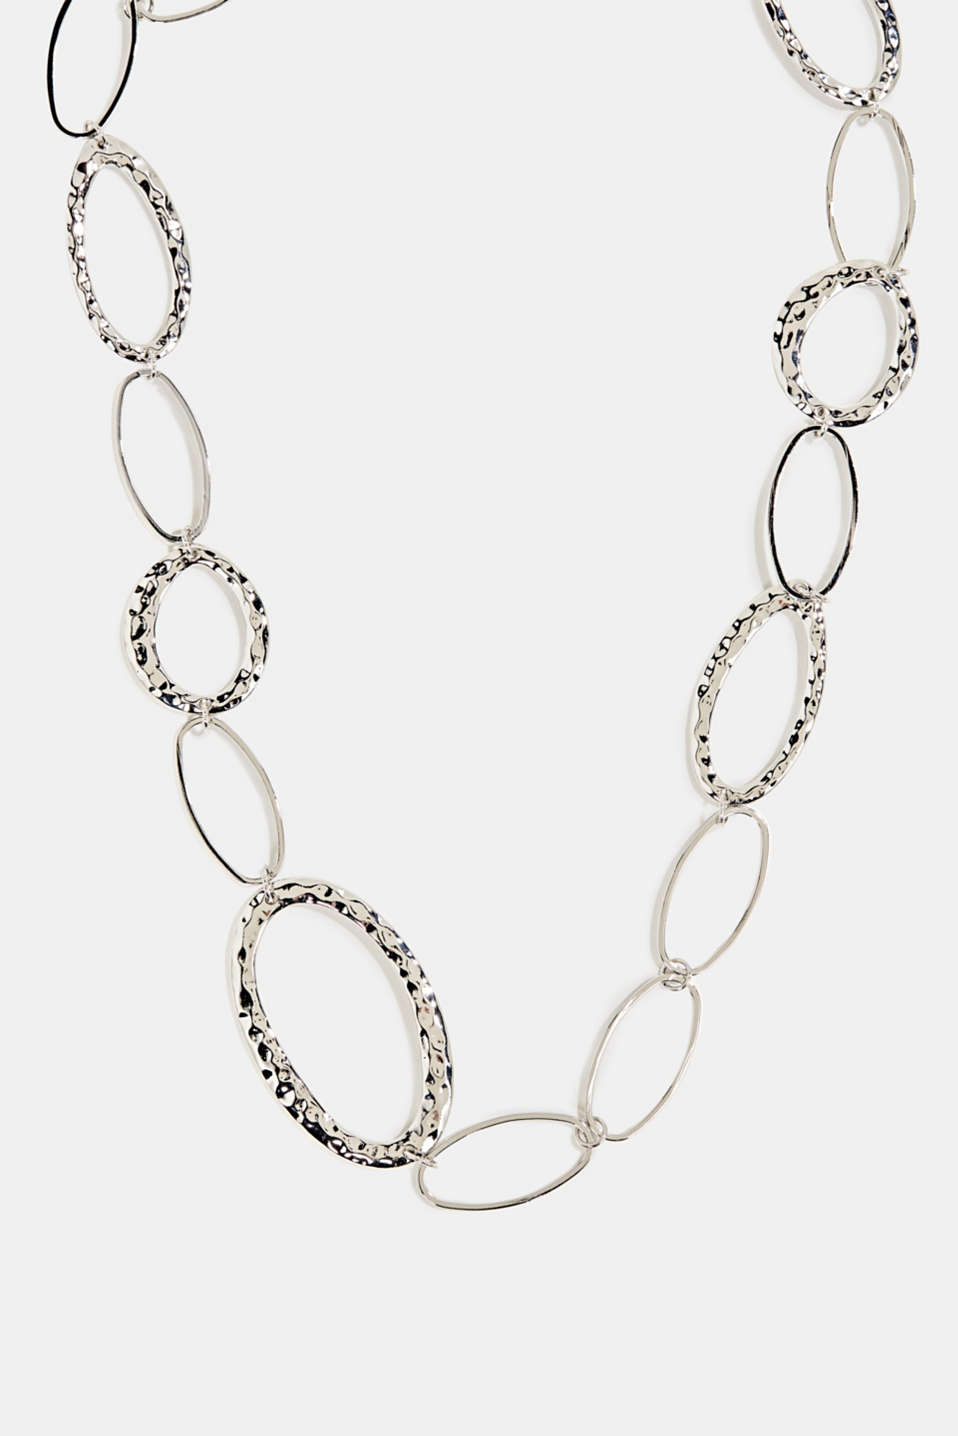 Esprit - Silver metal necklace with oval links